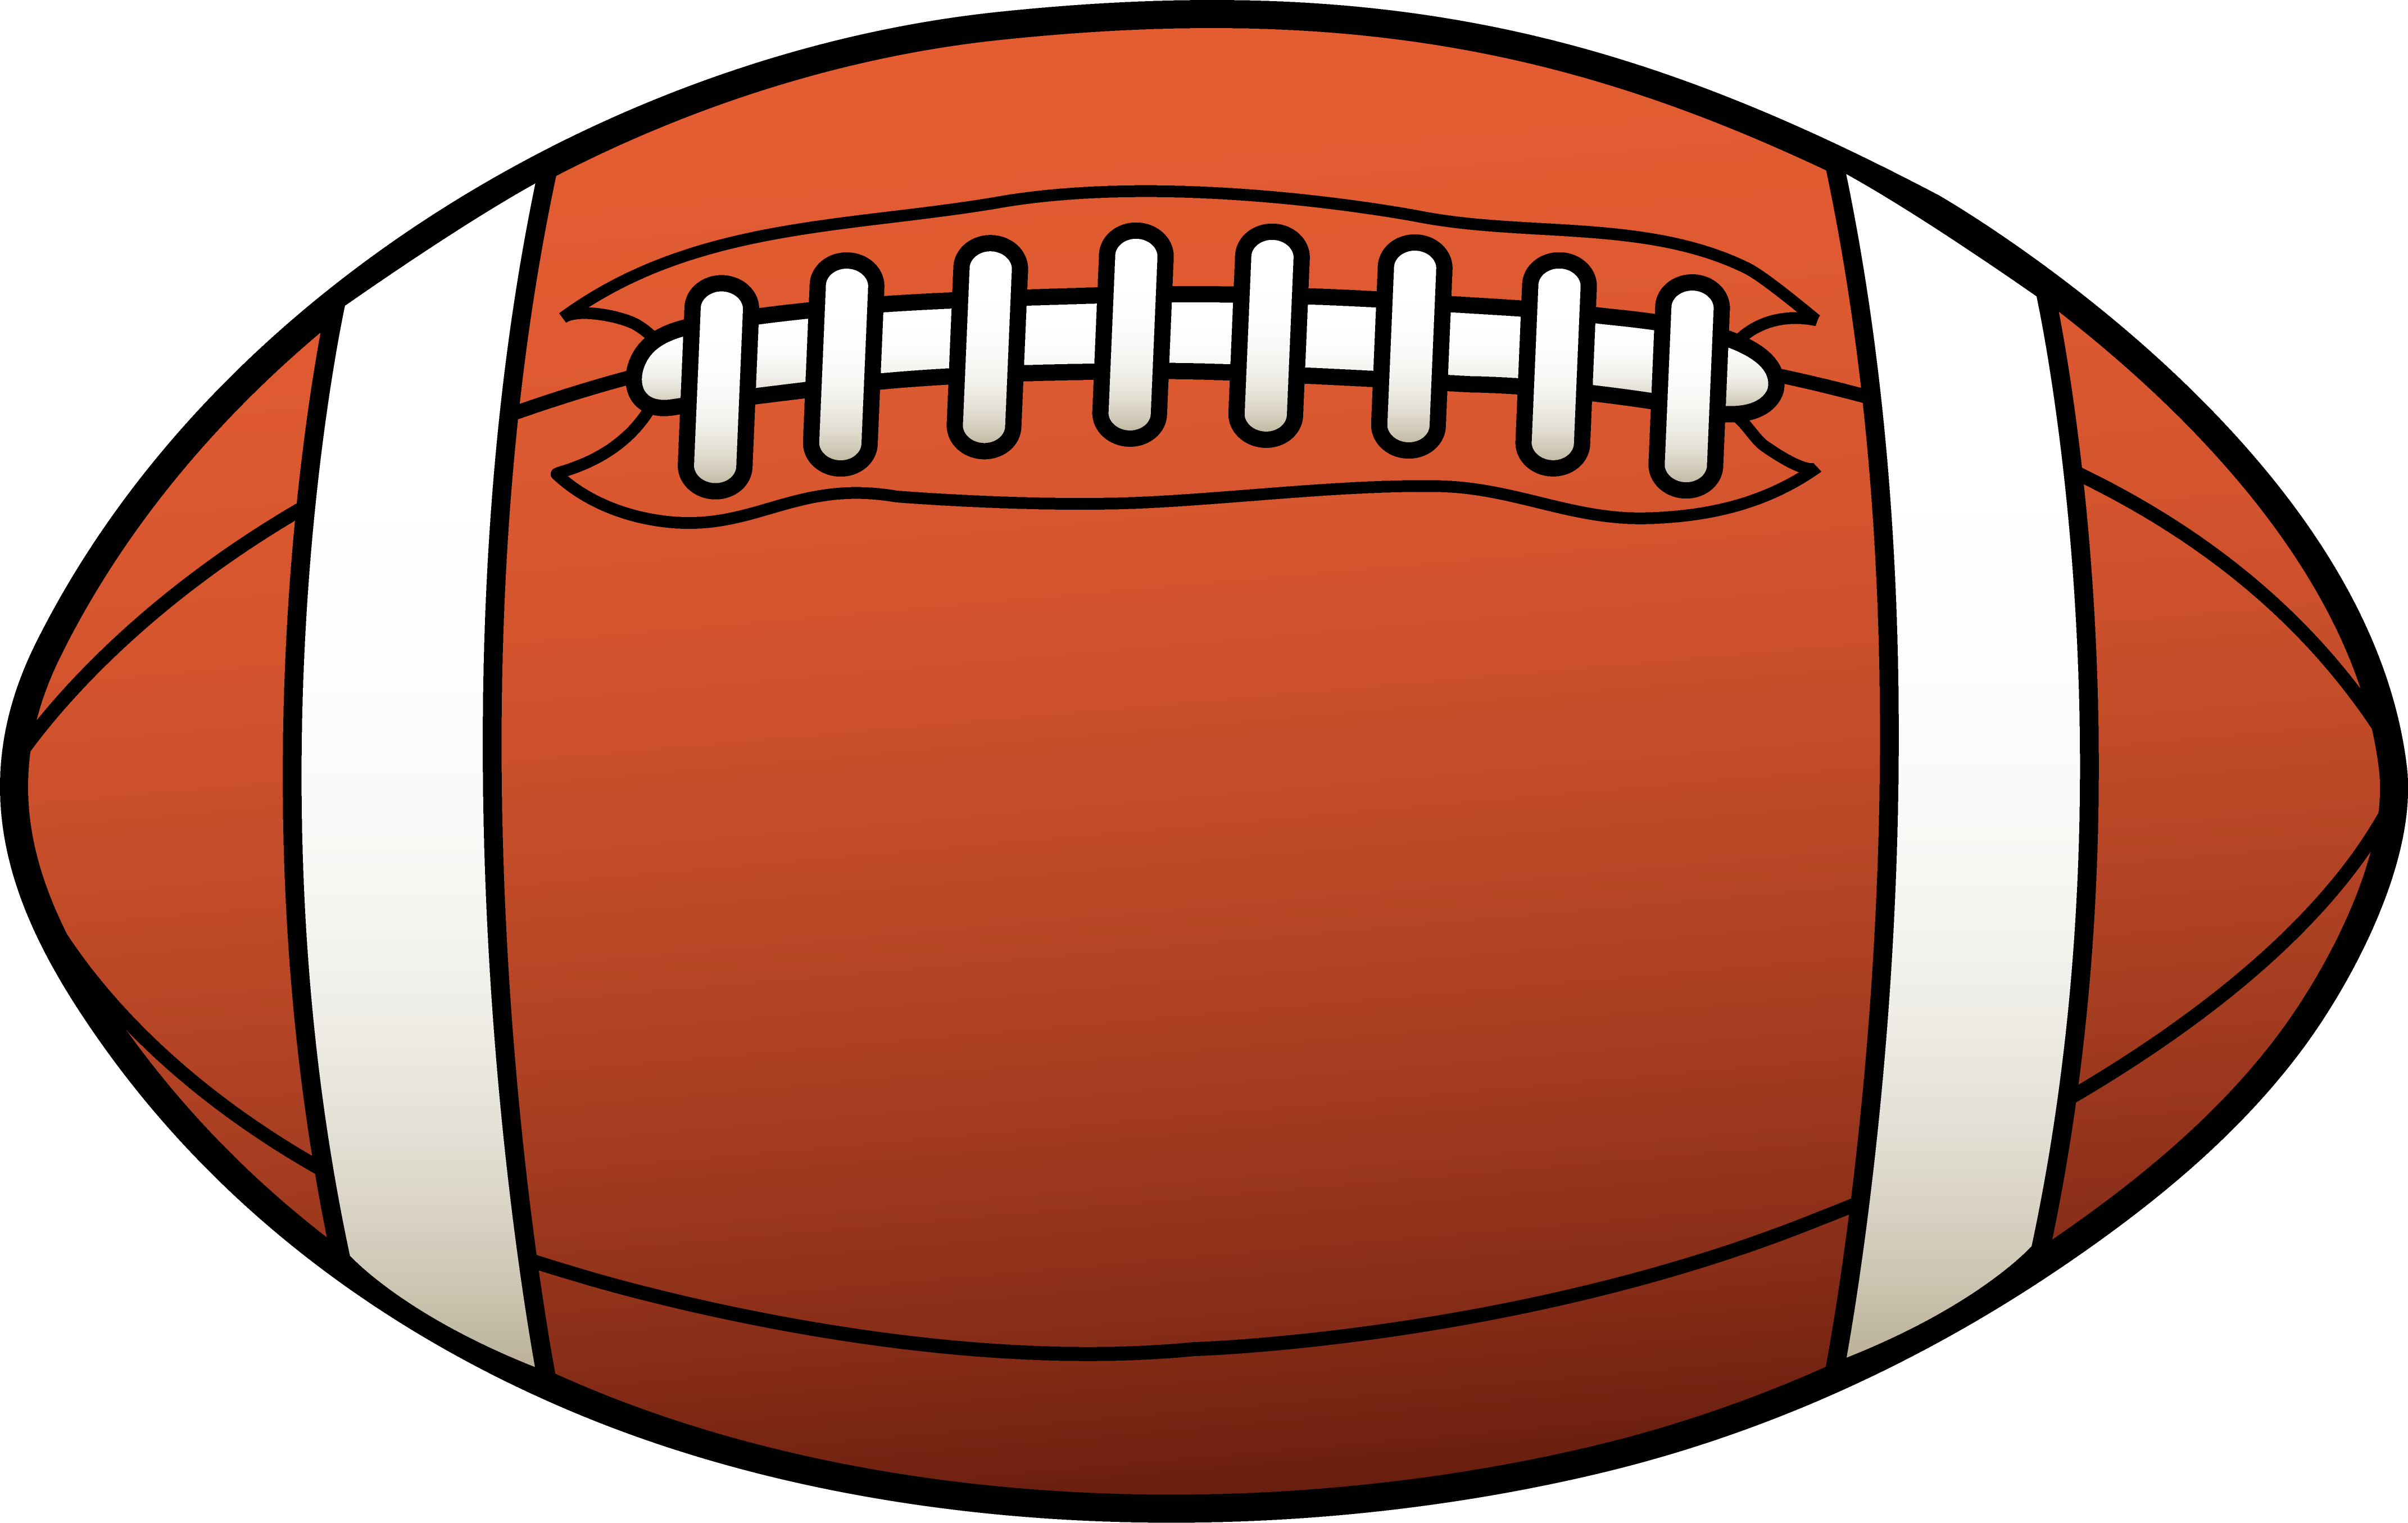 Rugby Ball or American .